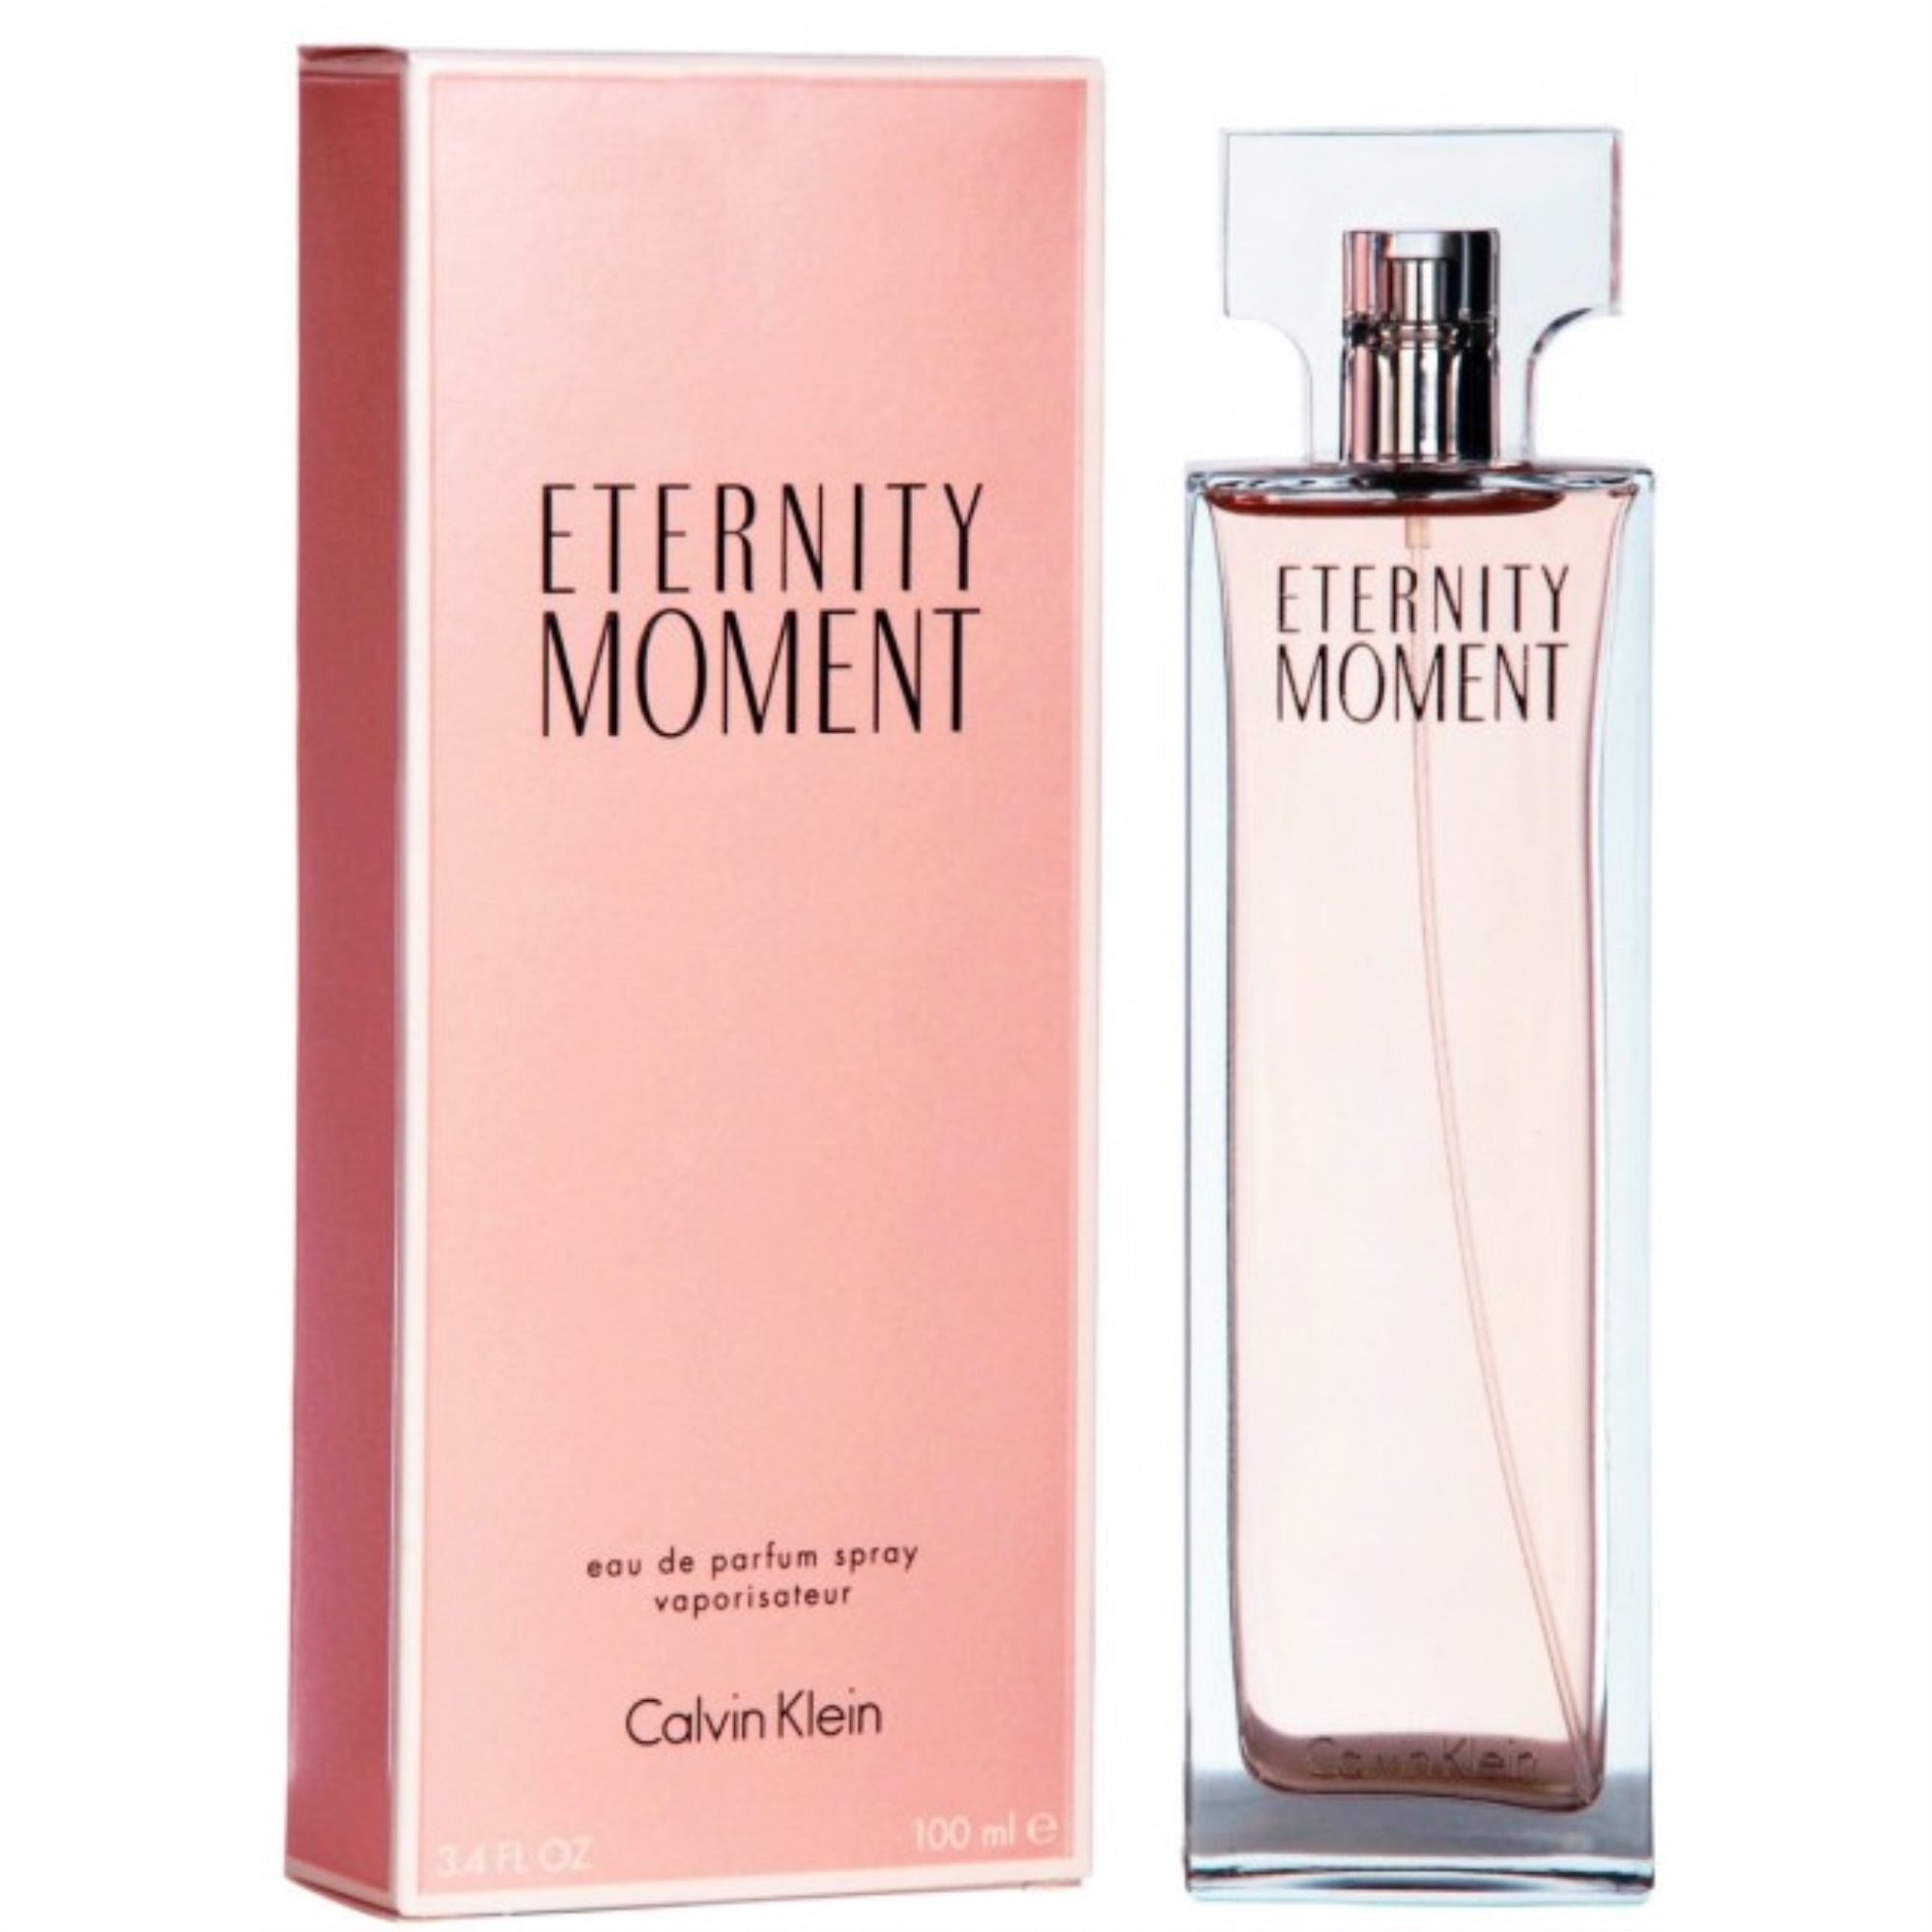 Calvin Klein Eternity Moment For Her Eau De Parfum 100ml